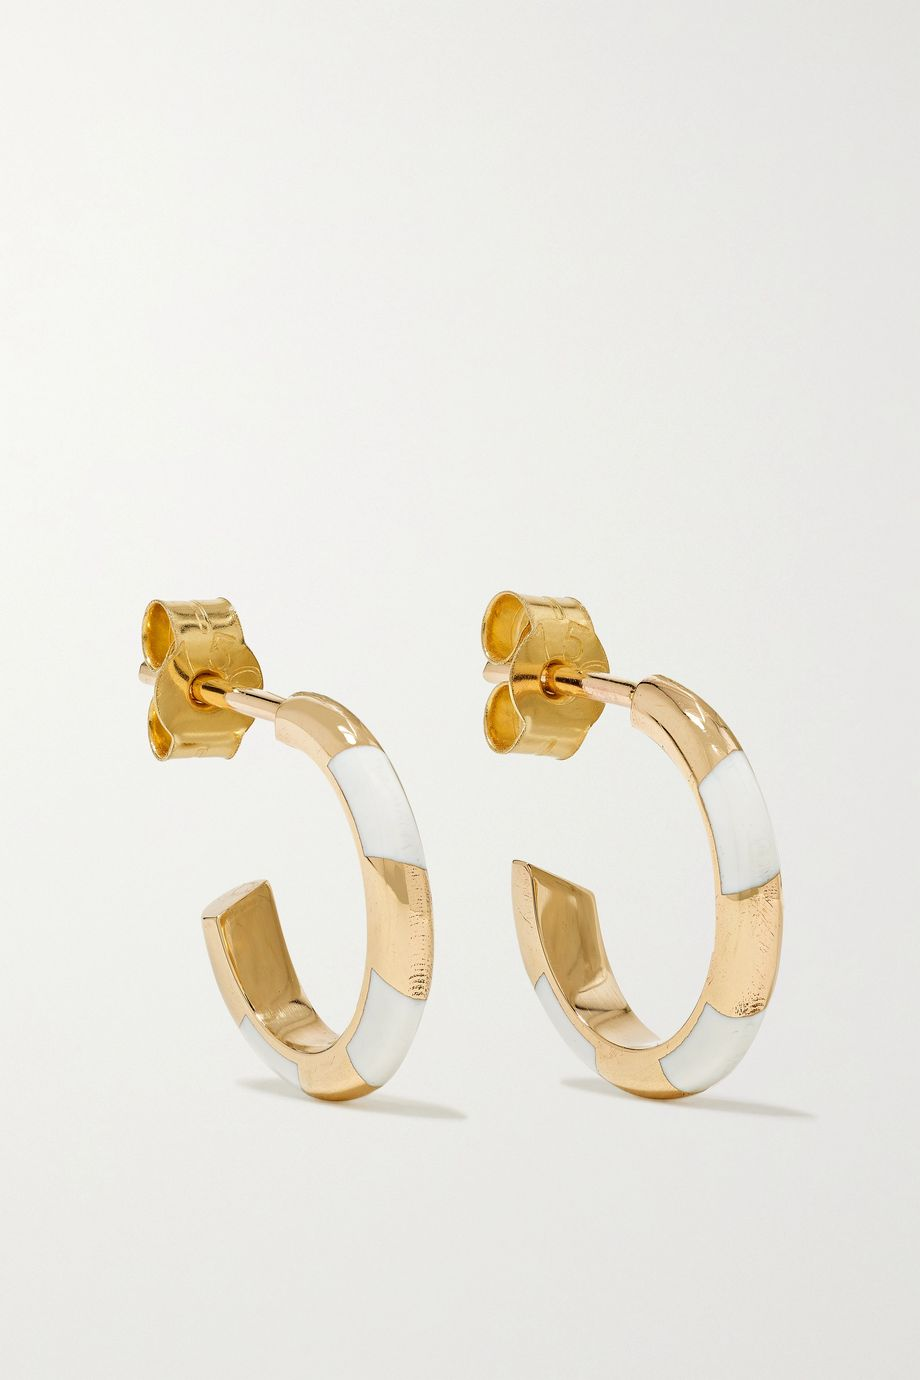 Alice Cicolini Memphis Candy 14-karat gold and enamel hoop earrings